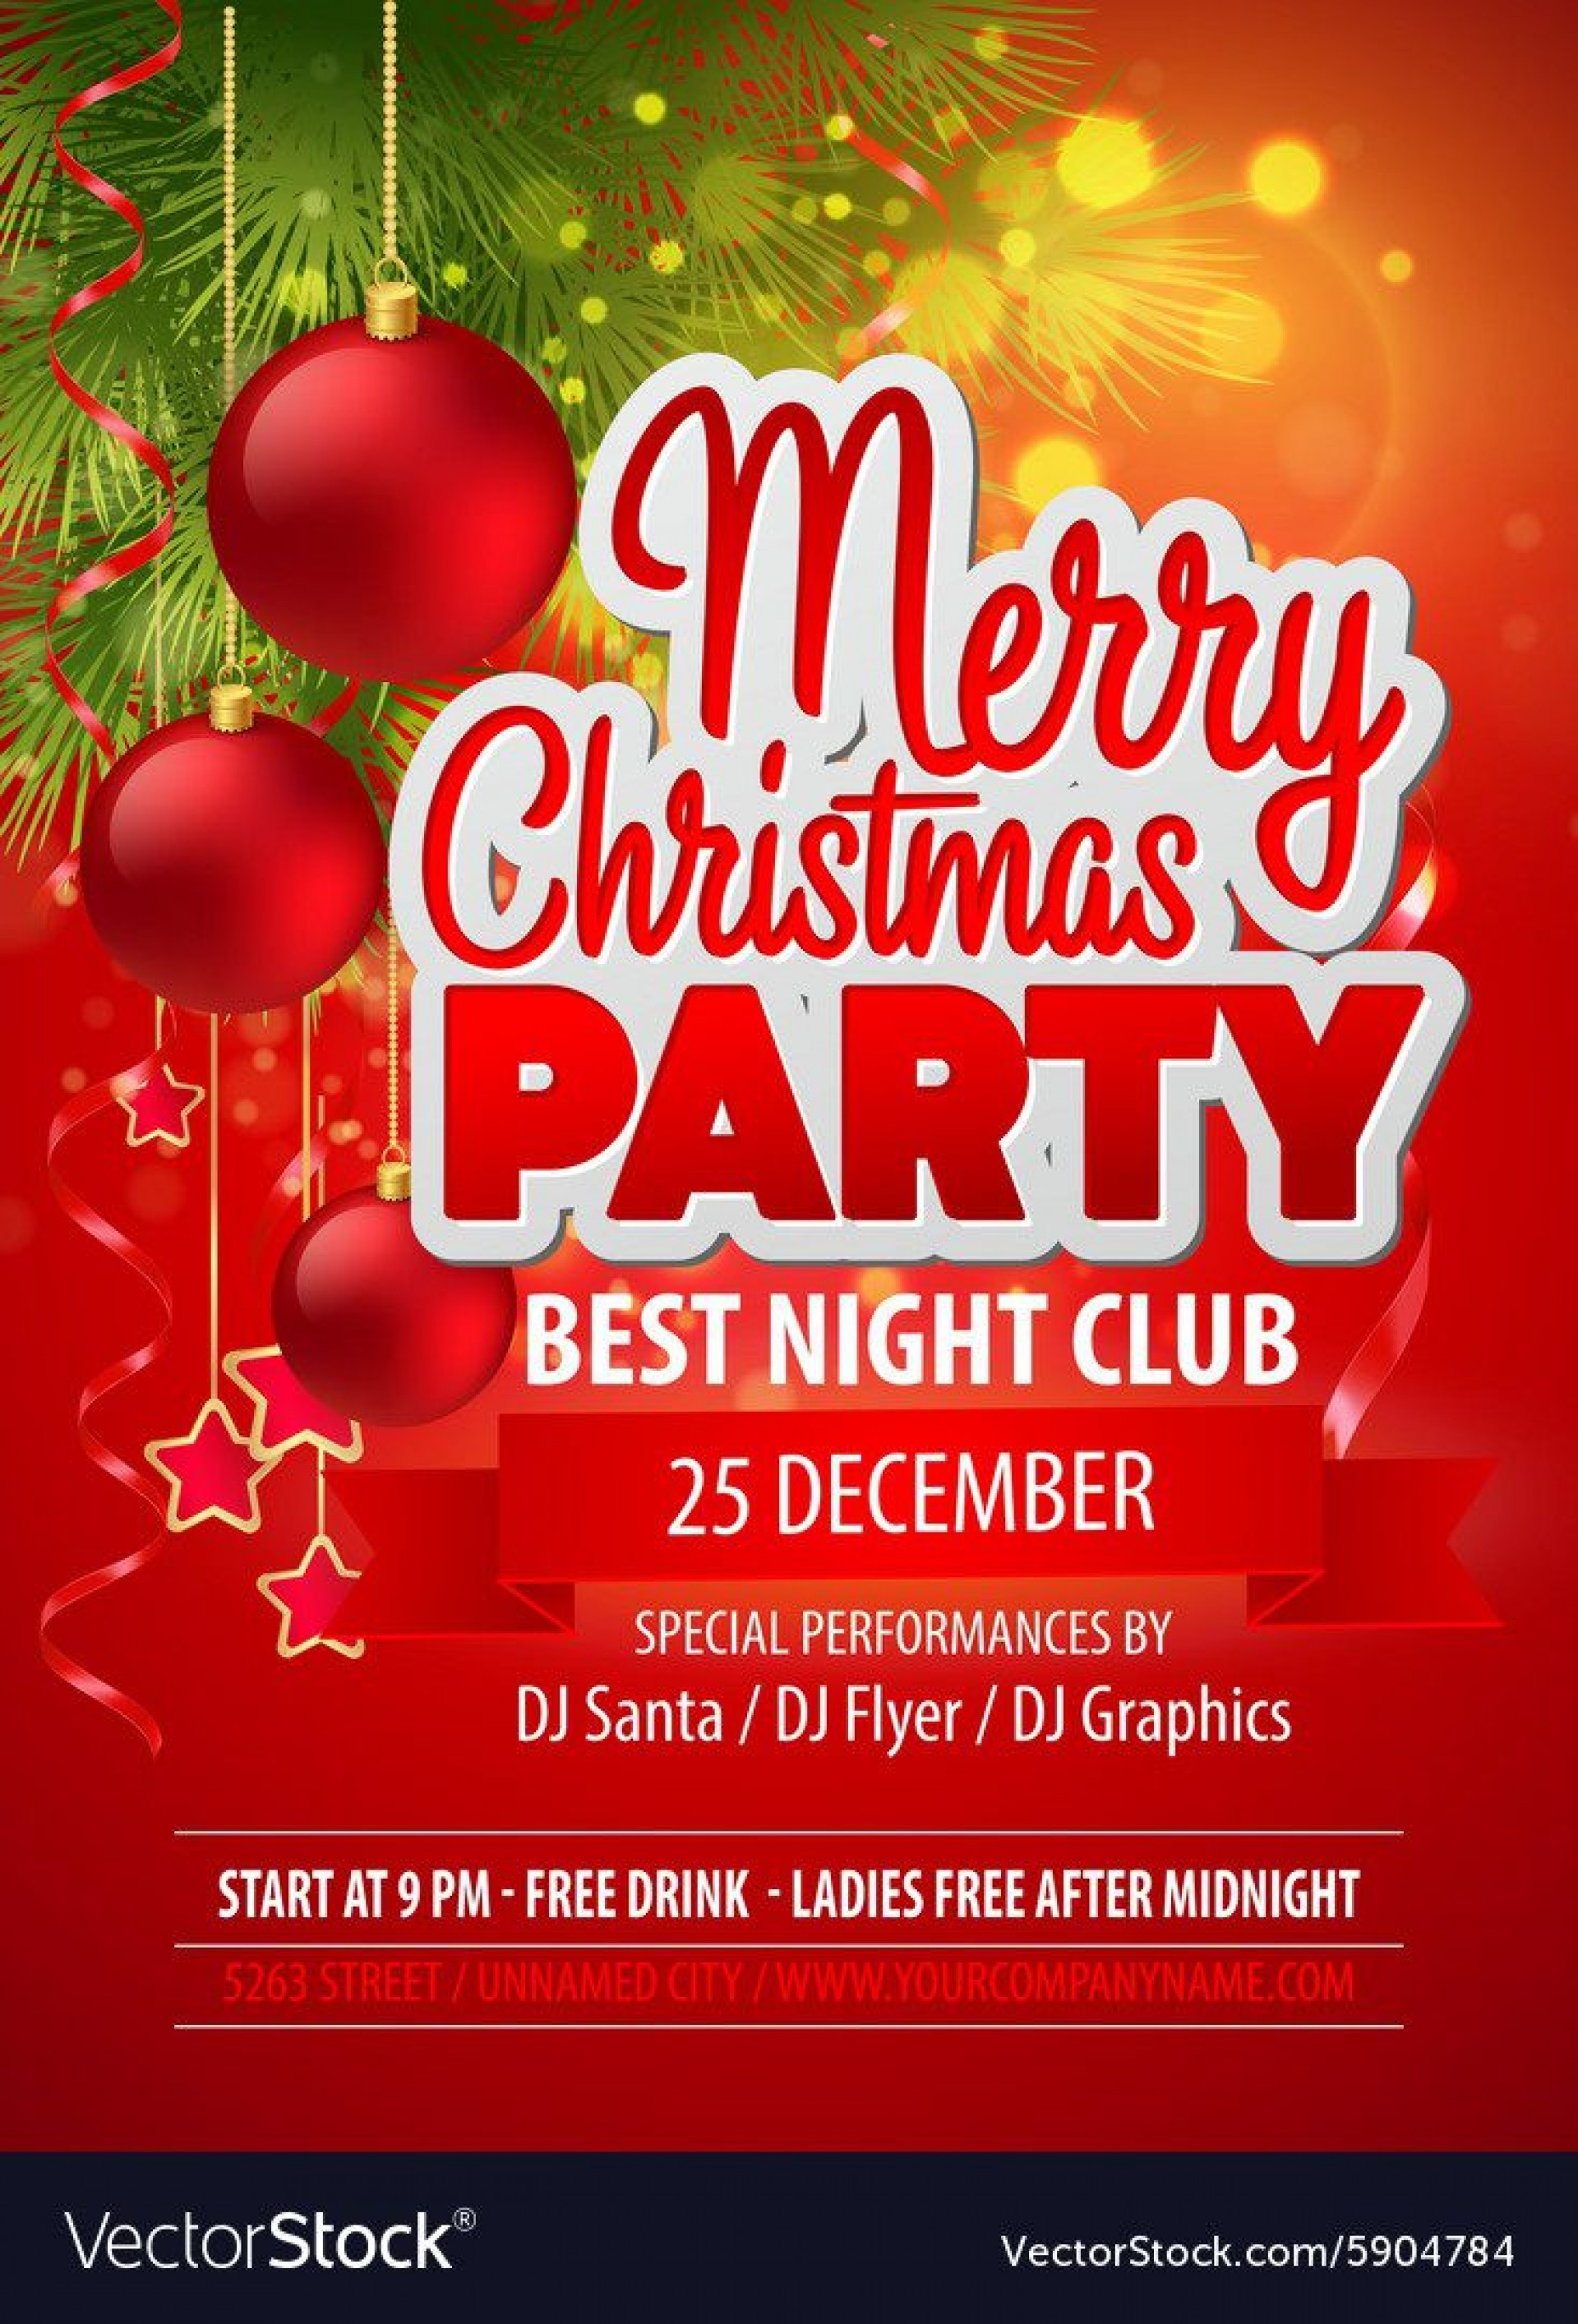 004 Outstanding Christma Party Flyer Template Free High Resolution  Company Invitation Printable Word1920